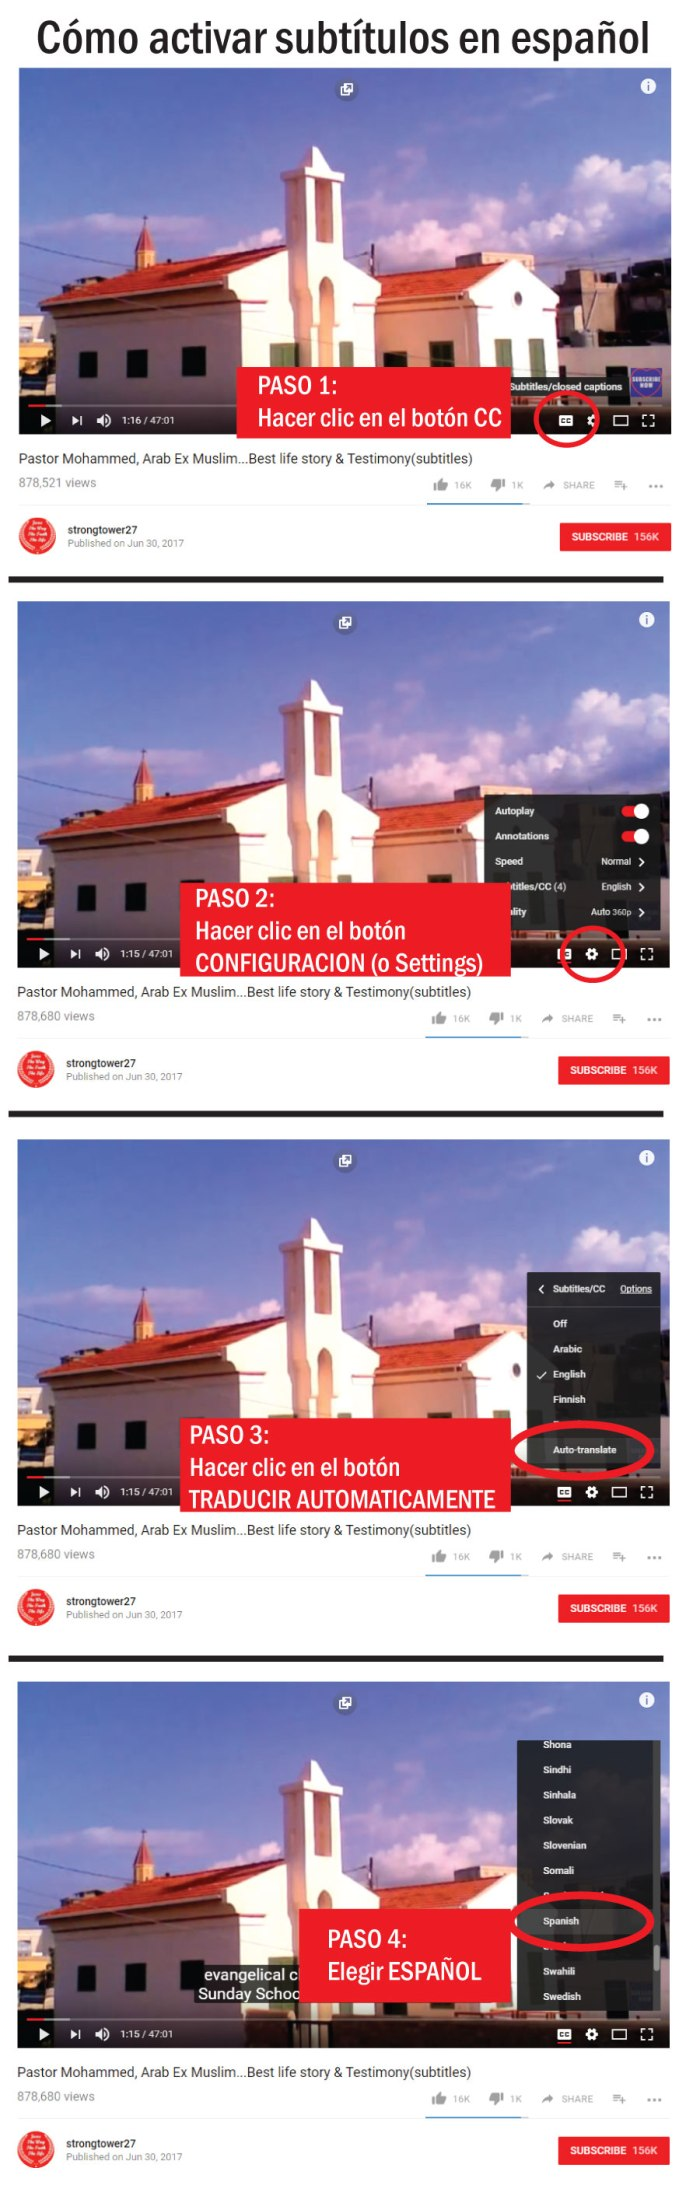 VER-VIDEO-EN-ESPAÑOL.jpg